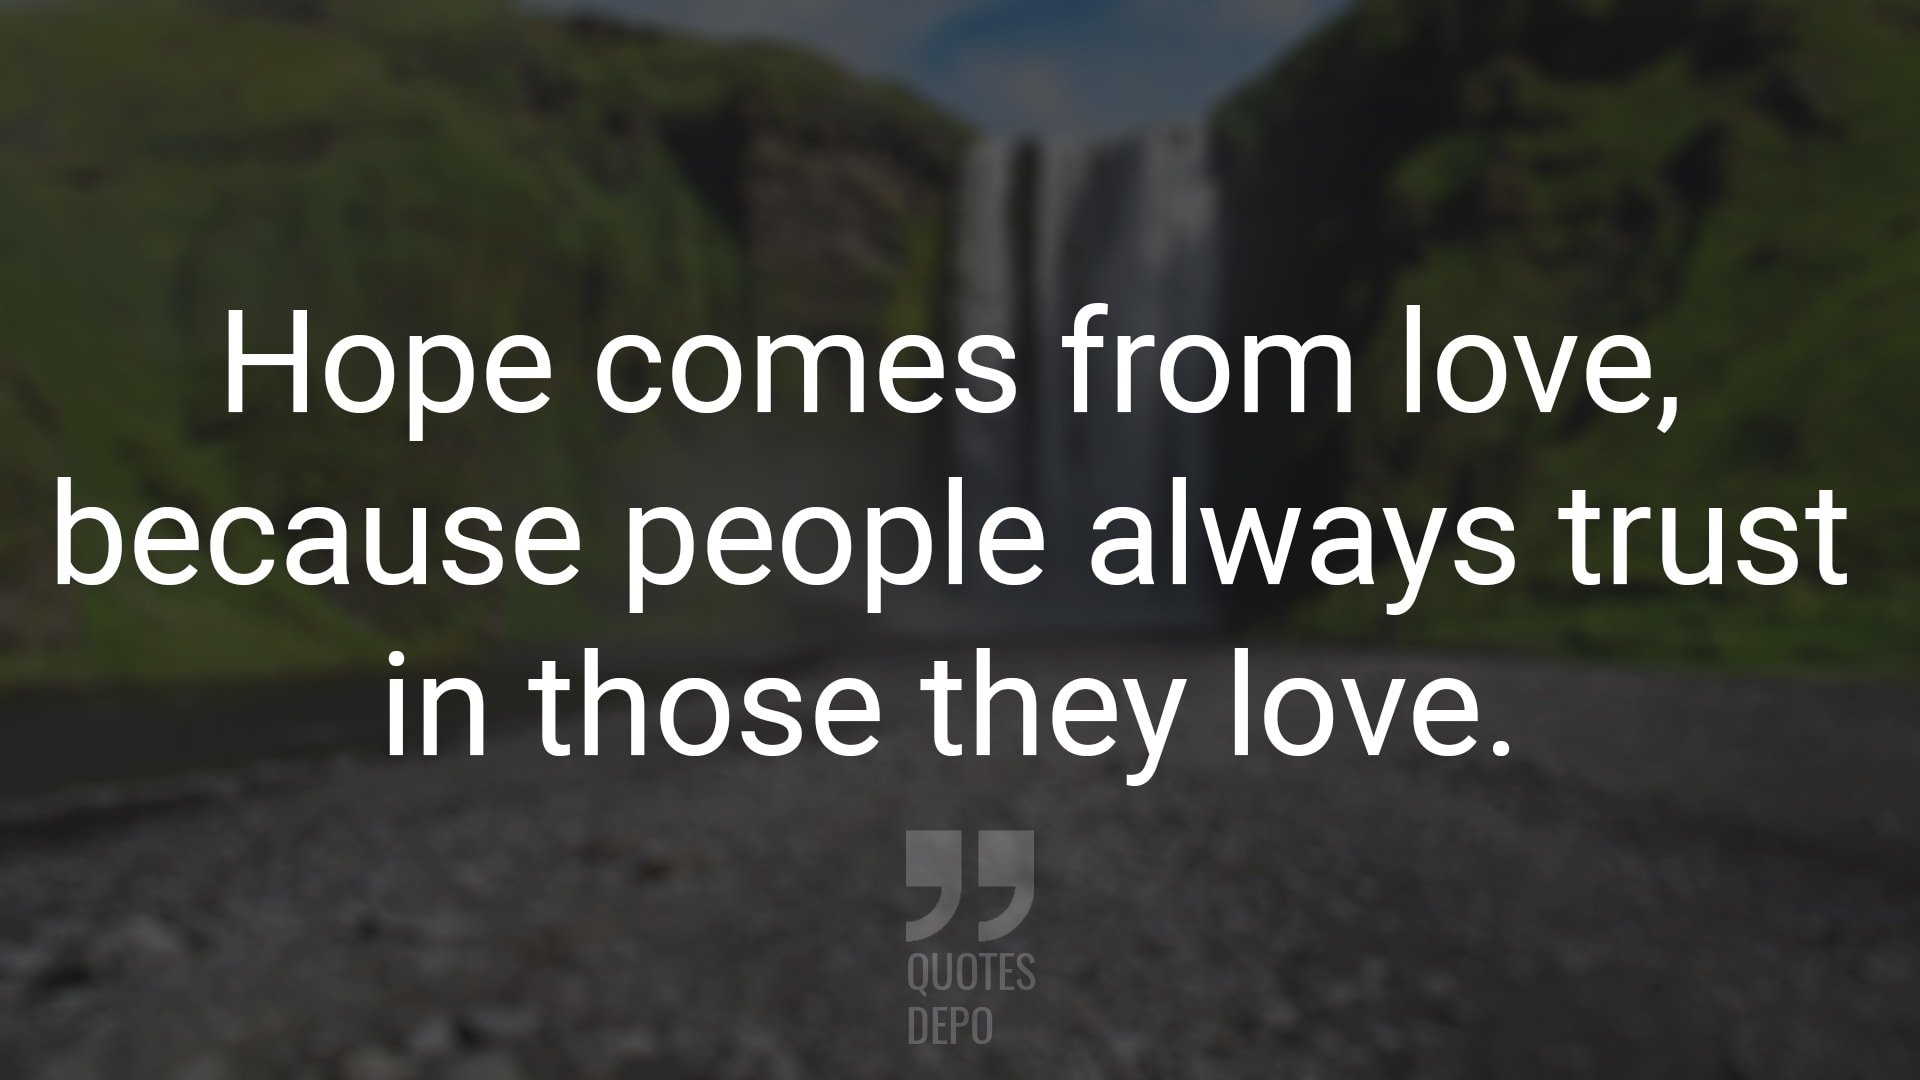 hope comes from love